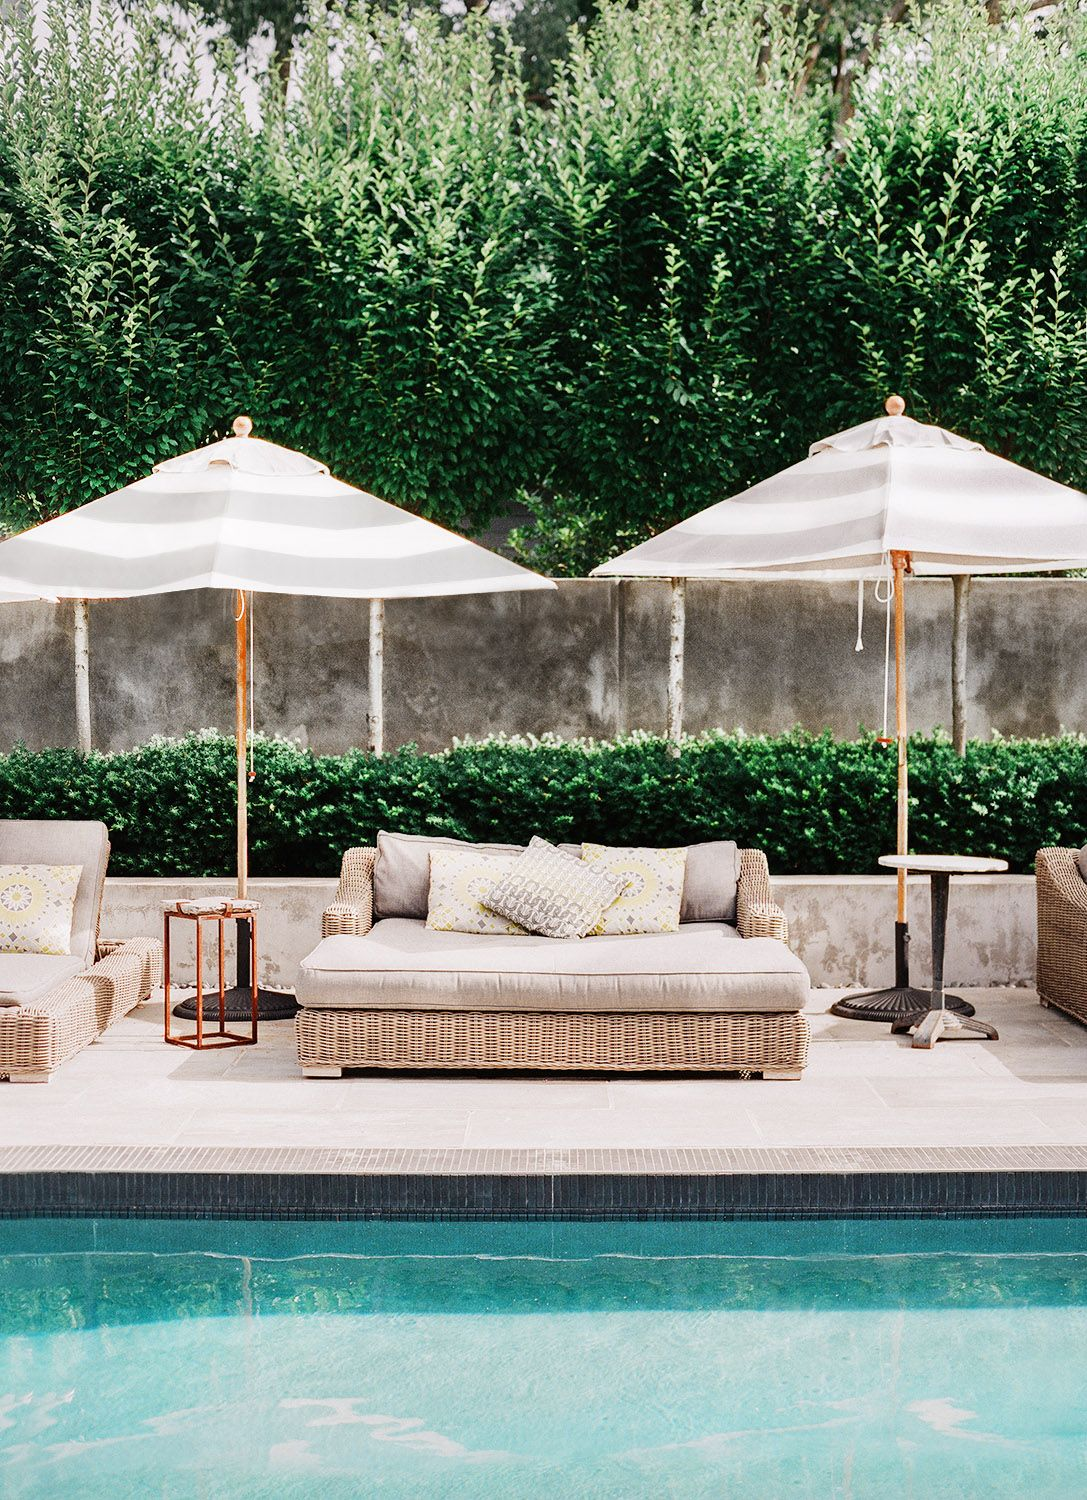 Outdoor poolside perfection! Love the limestone tiles, white striped ...